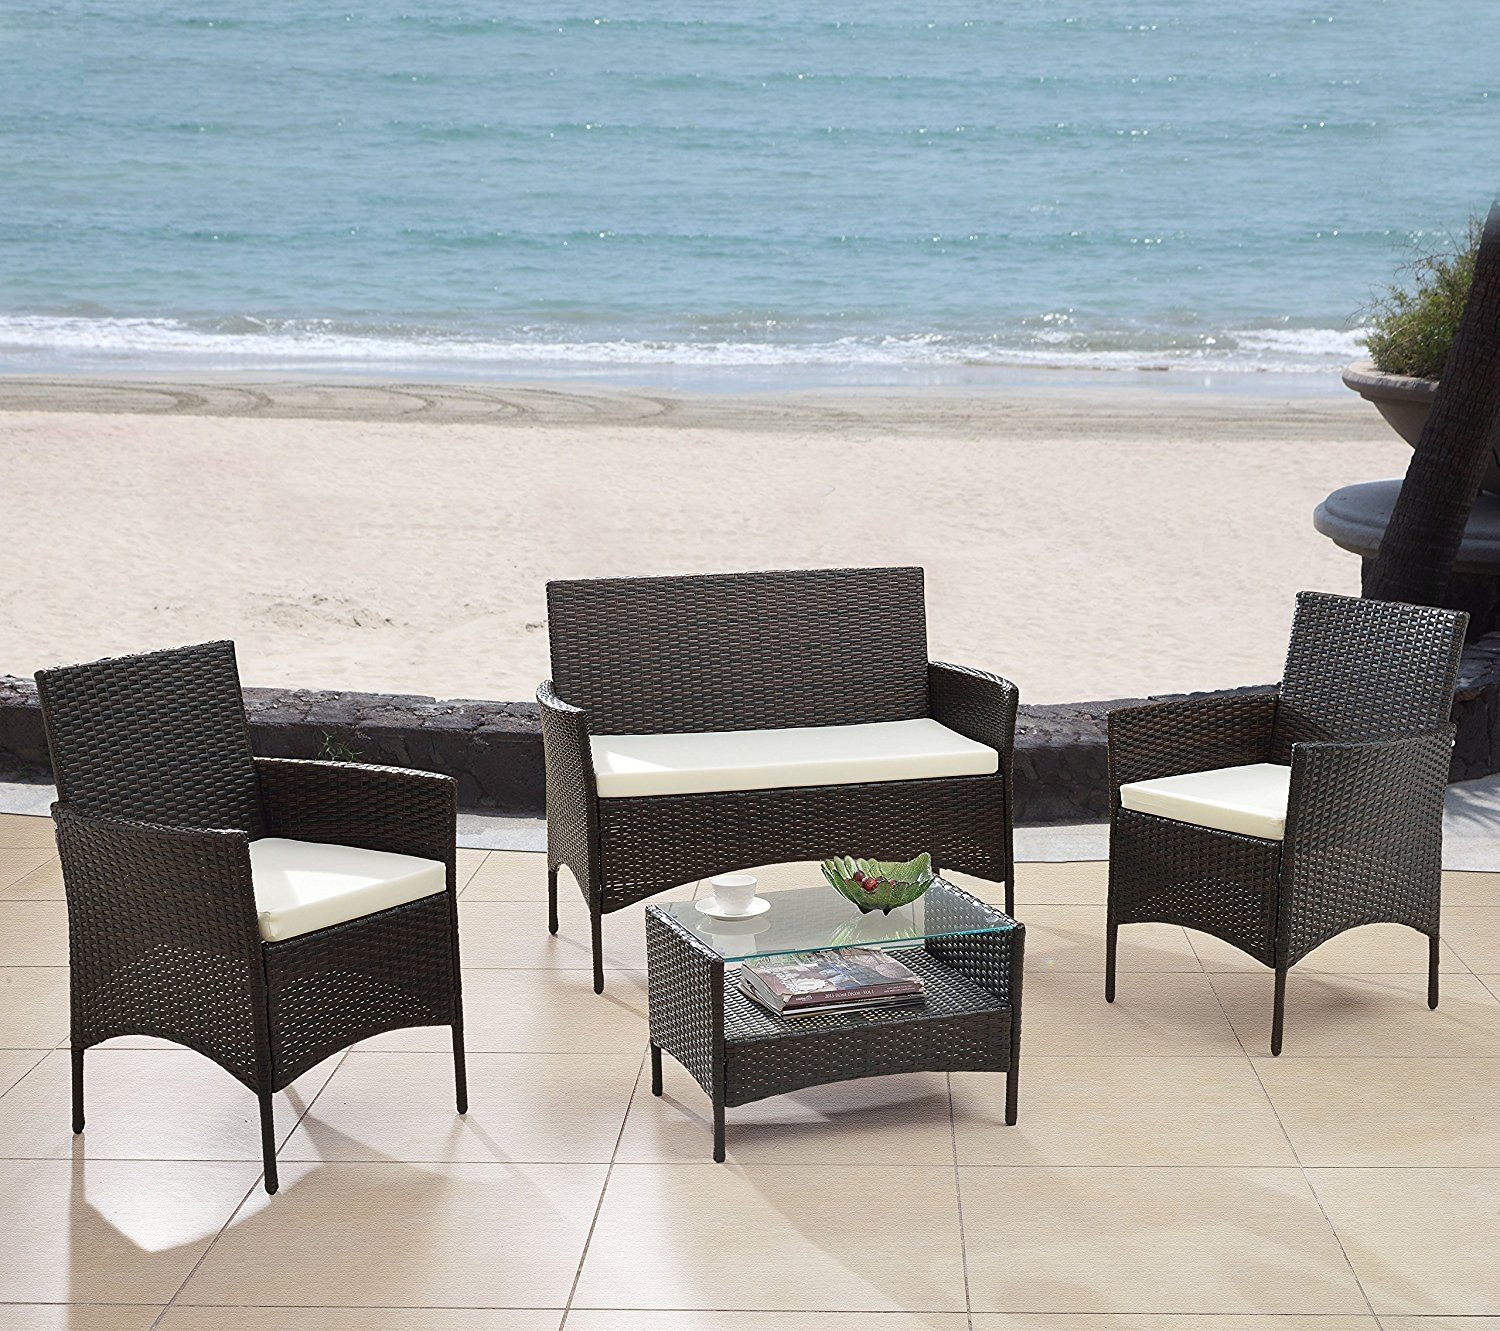 Outstanding Details About Modern Outdoor Garden Patio Backyard Set 4 Piece Bench Chairs Table Brown Forskolin Free Trial Chair Design Images Forskolin Free Trialorg